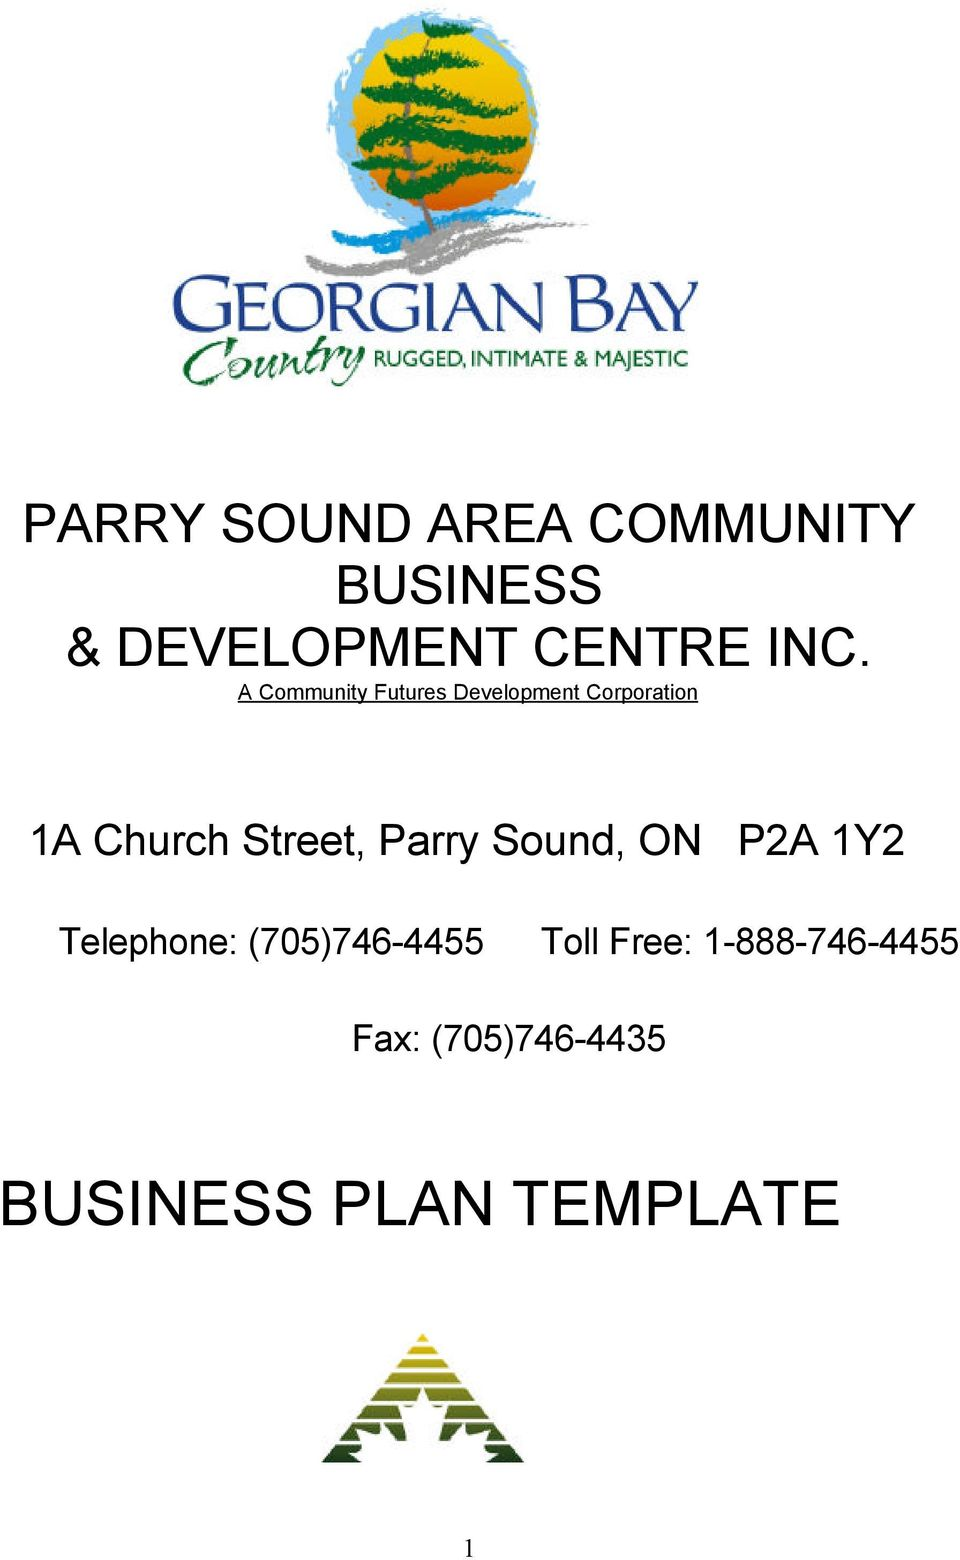 Street, Parry Sound, ON P2A 1Y2 Telephone: (705)746-4455